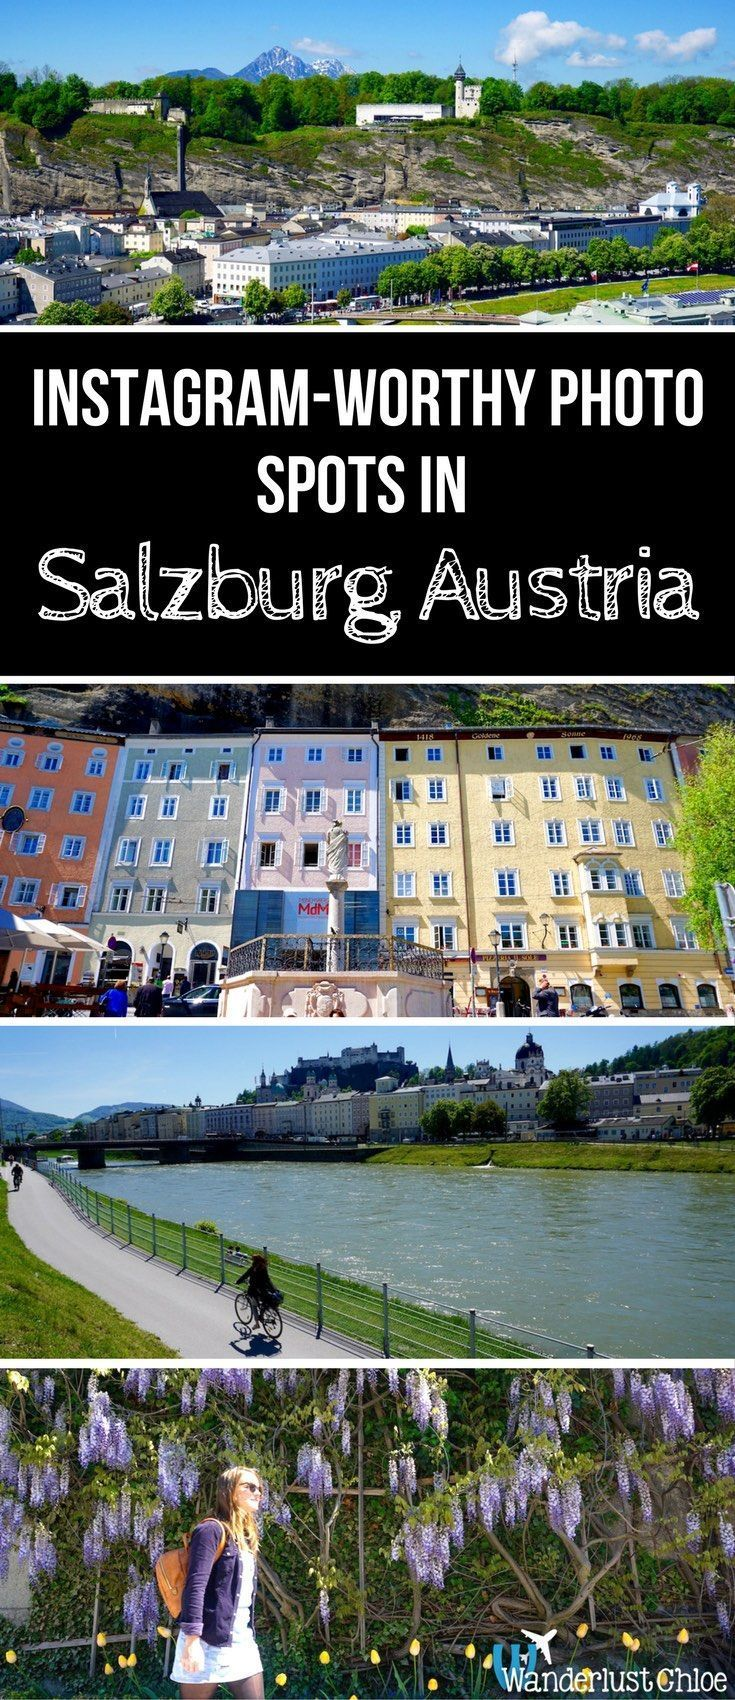 Instagram-Worthy Photo Spots In Salzburg, Austria. Get ready to snap some beautiful photos of Salzburg, Austria! Grab your camera and let's go in search of the best views of the city. https://www.wanderlustchloe.com/salzburg-austria-views/